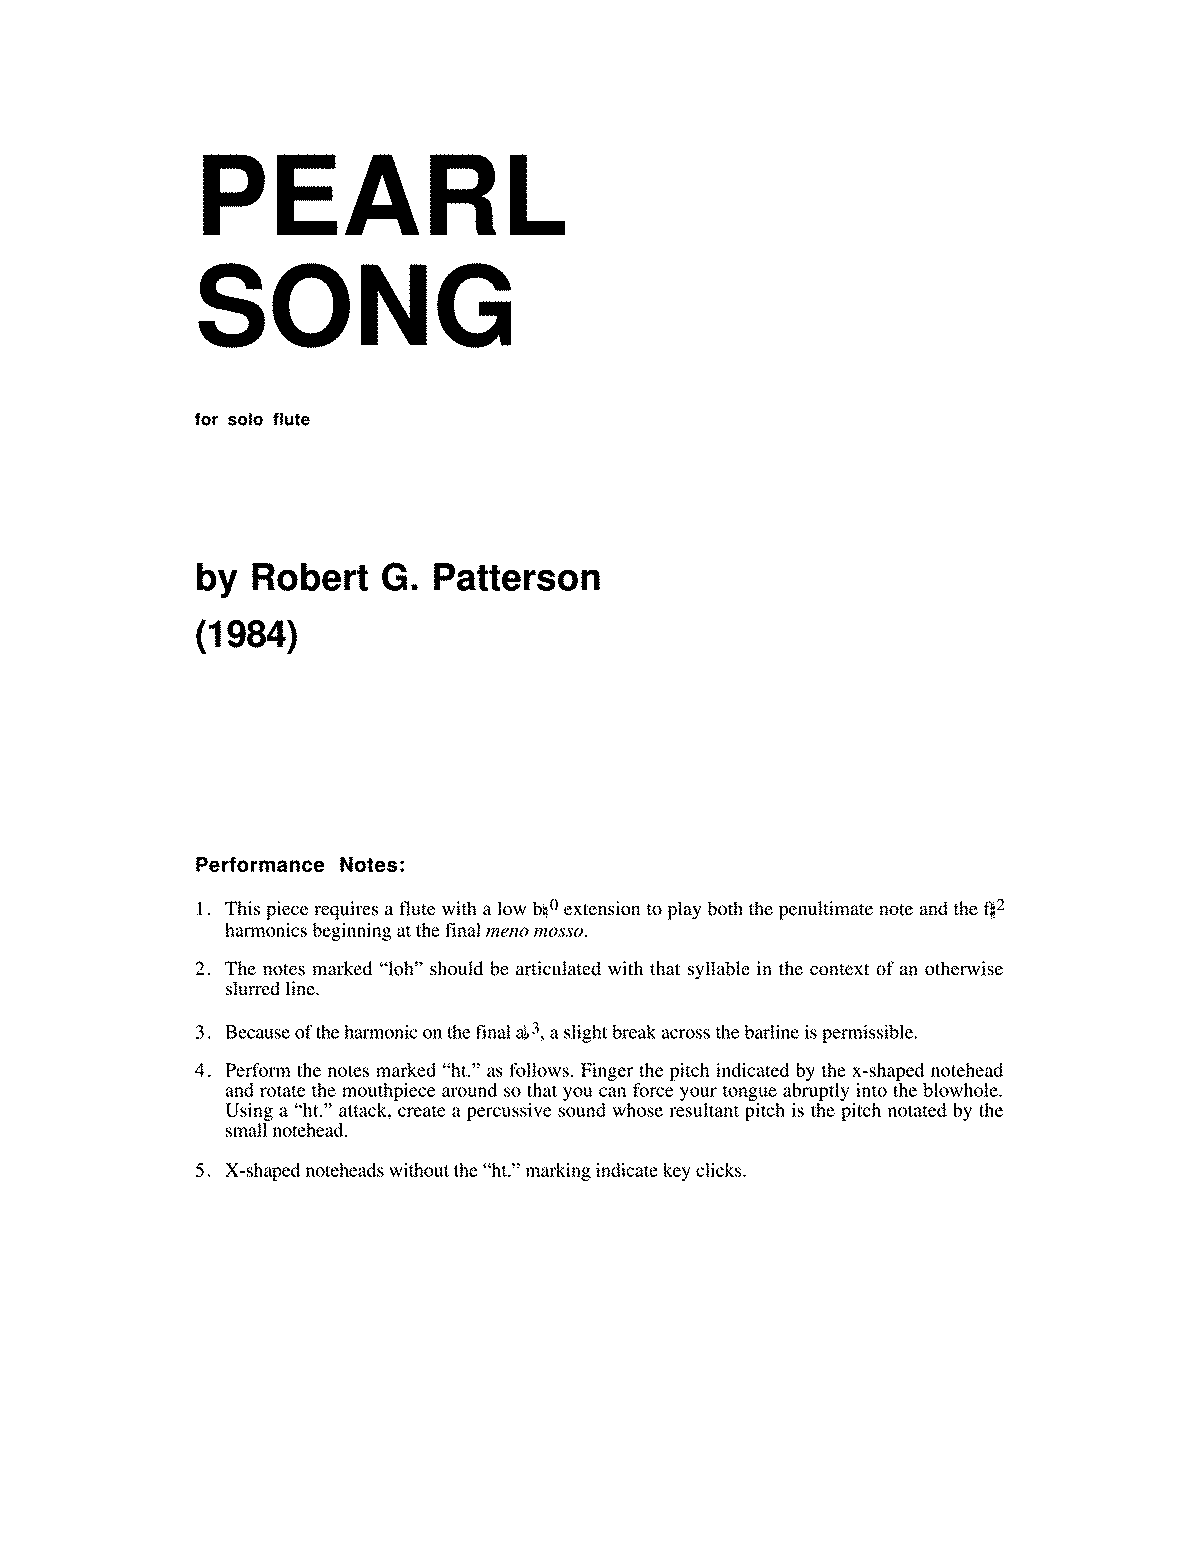 PMLP409640-Patterson-Pearl Song.pdf